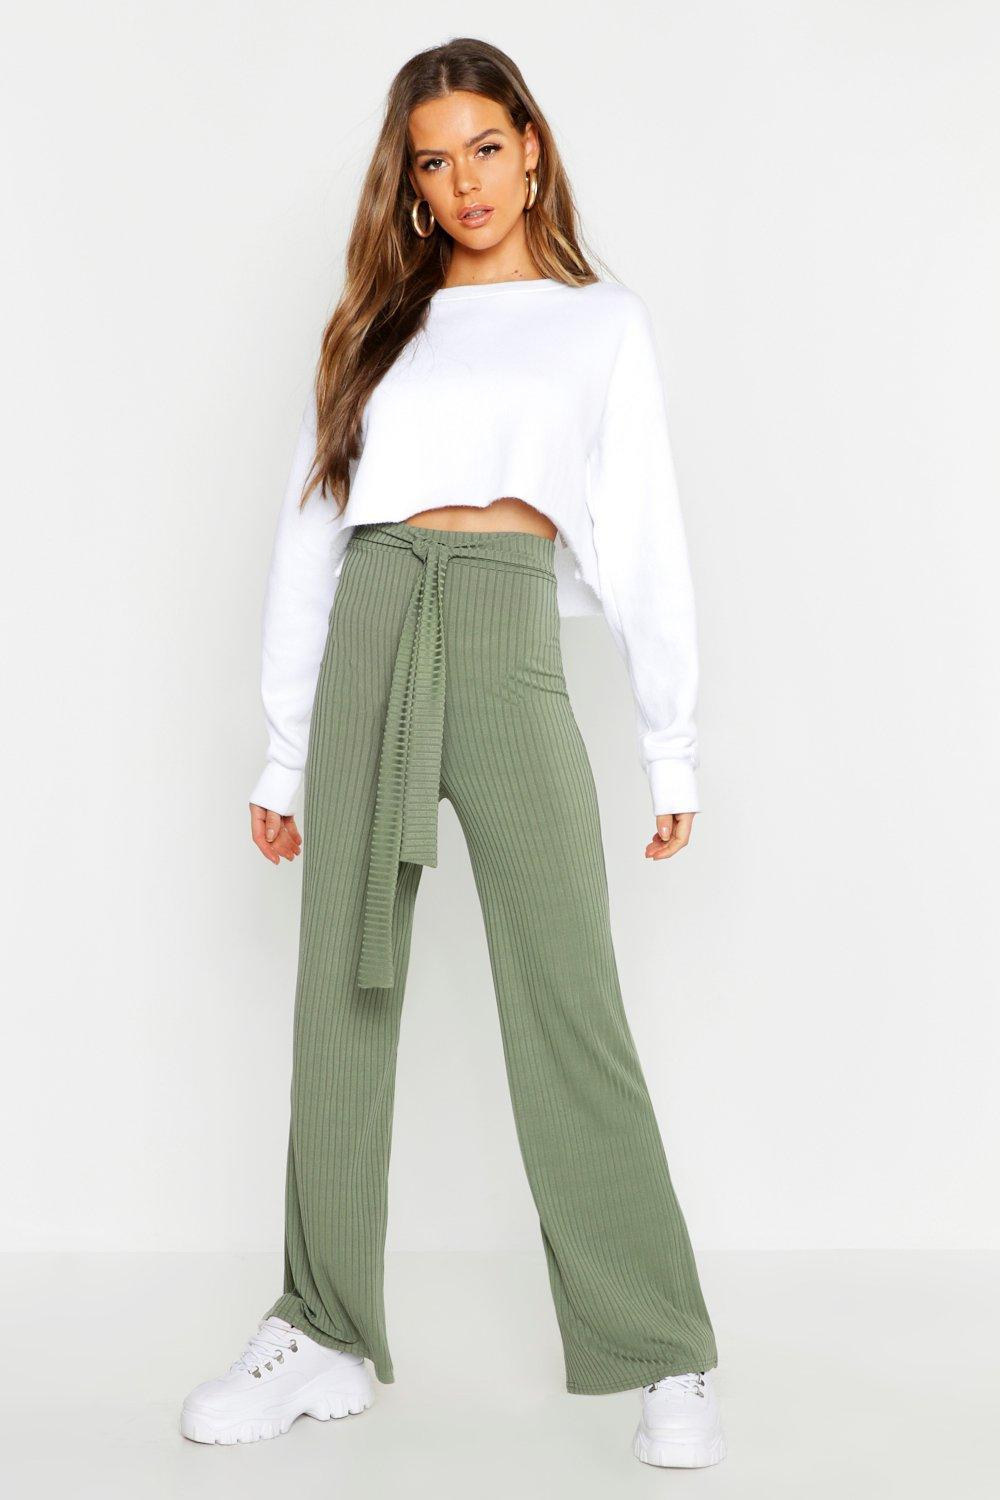 26c1ace7d6fa Lyst - Boohoo Tie Waist Rib Knit Wide Leg Trouser in Green